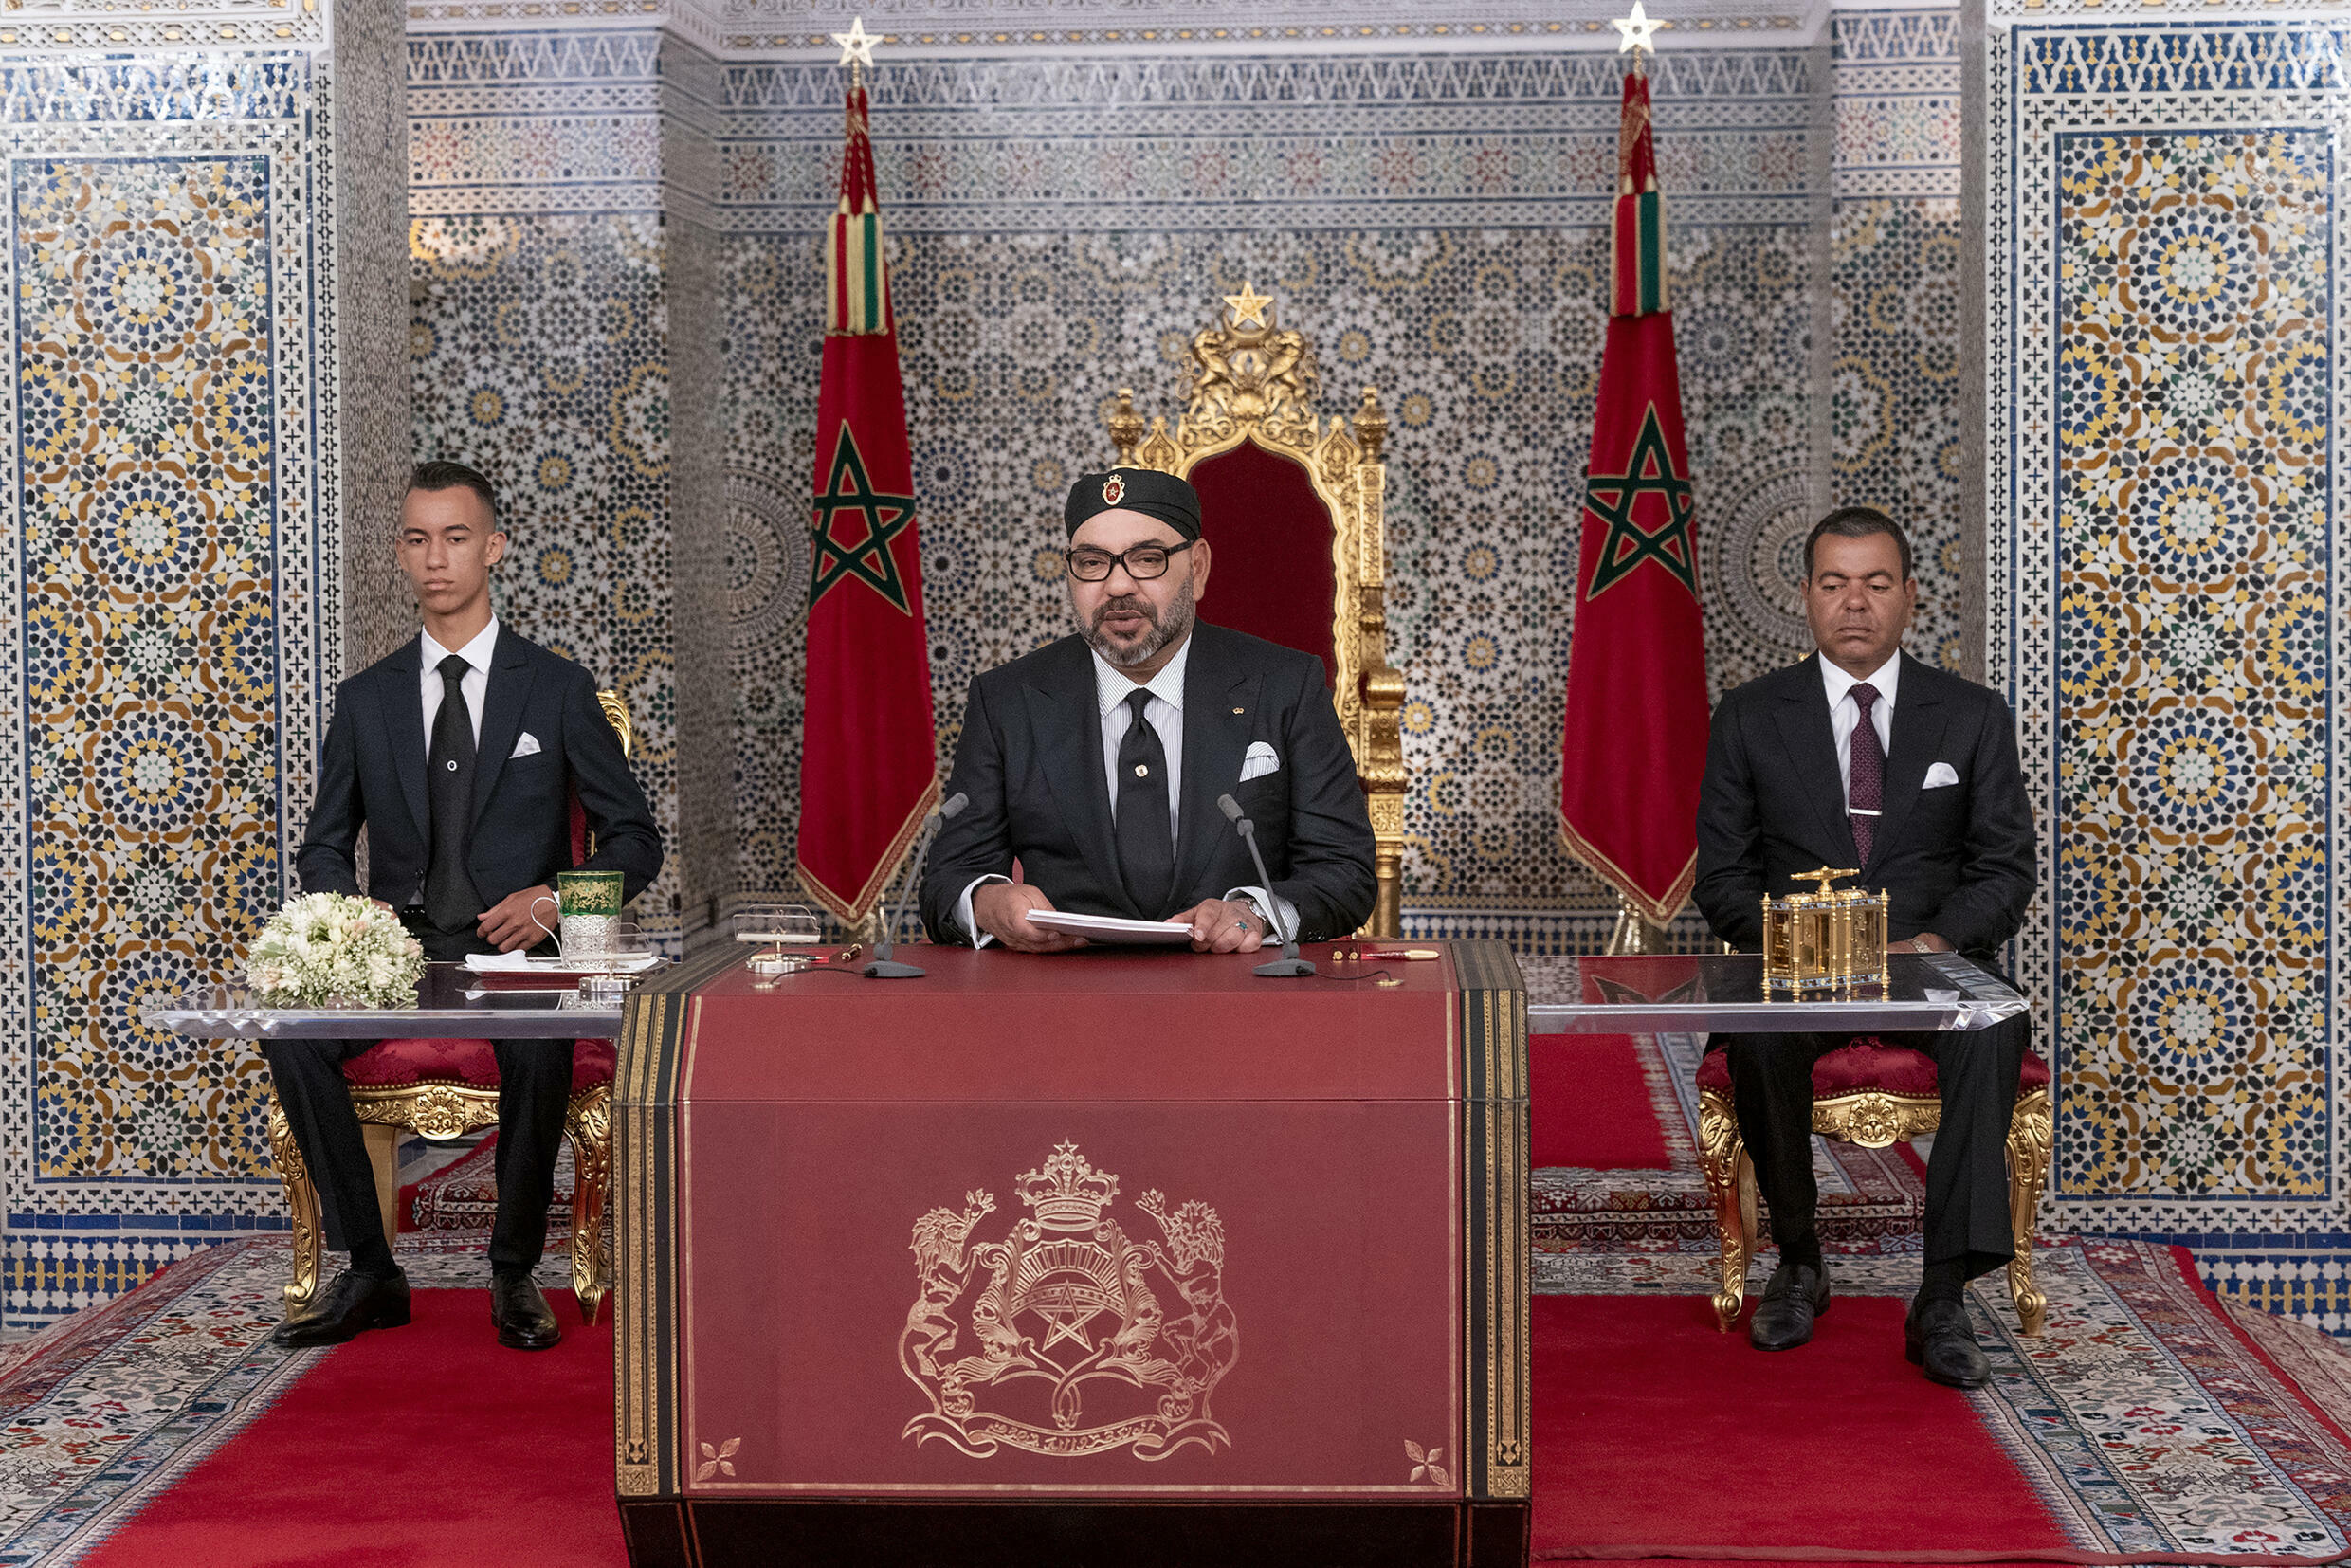 Despite the changing of the guard, policy changes are unlikely as major decisions in Morocco still come from King Mohammed VI (C)